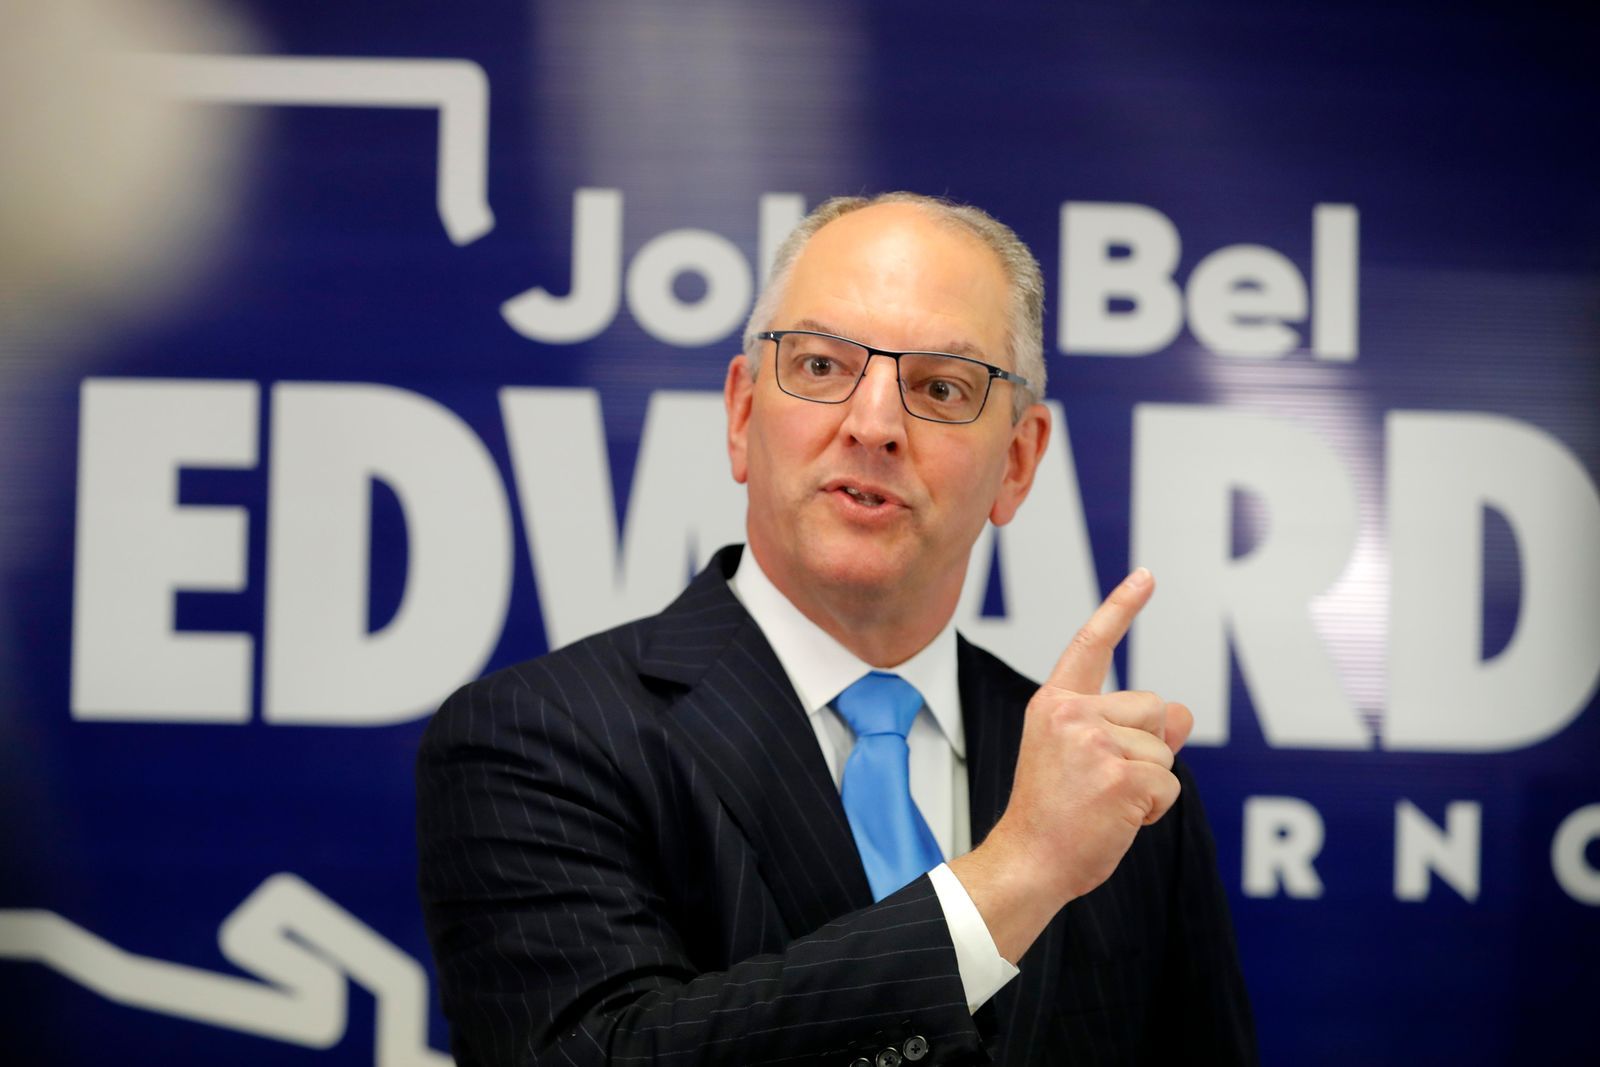 Louisiana Gov. John Bel Edwards talks to media at his campaign office in Shreveport, La., Thursday, Nov. 14, 2019. Edwards, a Democrat, was campaigning in the same metropolitan area his Republican challenger, Eddie Rispone, will be holding a campaign rally with President Donald Trump later in the evening. (AP Photo/Gerald Herbert)